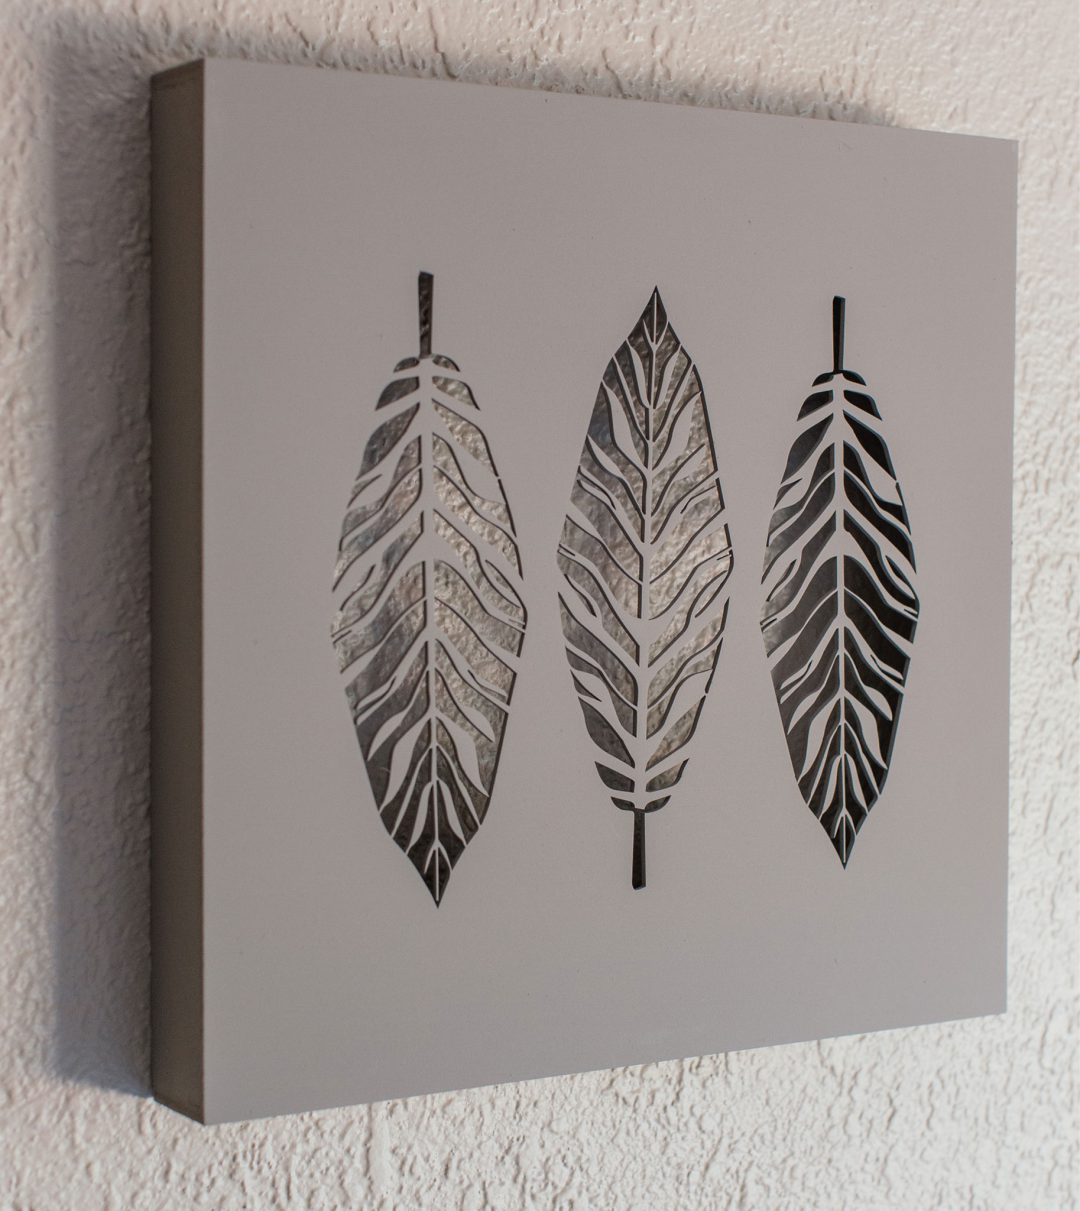 3D Wooden Canvas Boxes